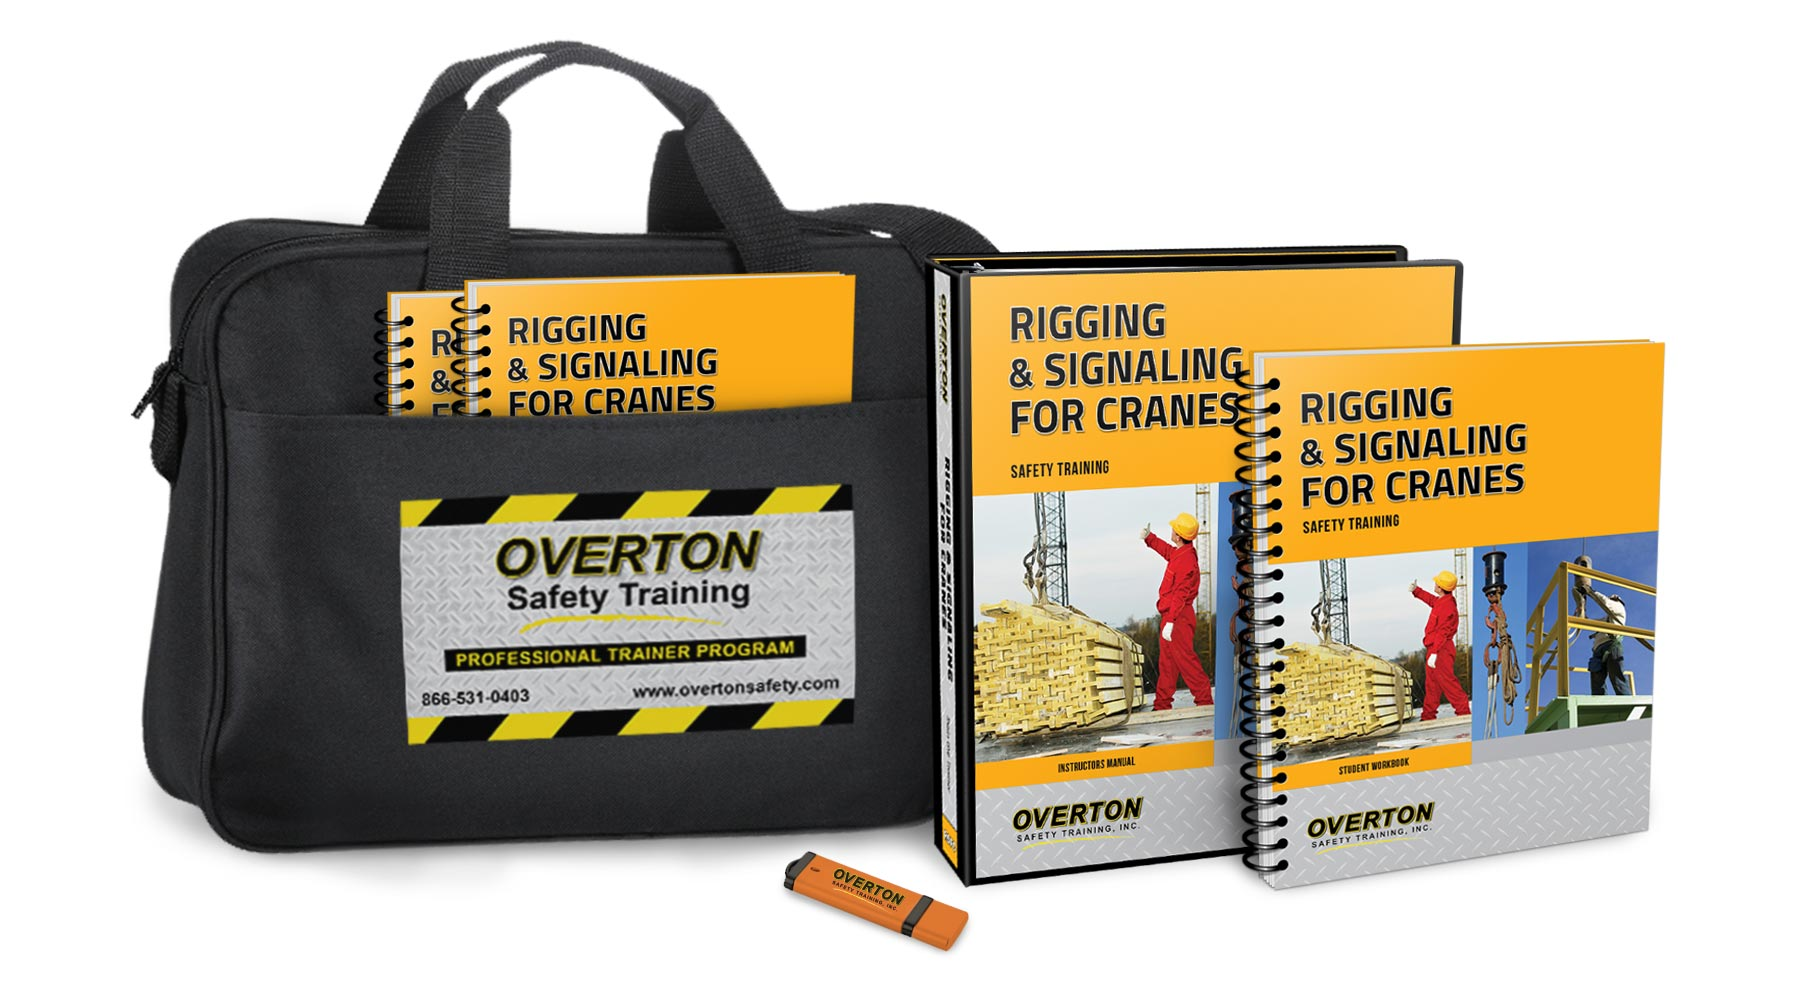 Overton Safety Training Your Complete Safety Training Source